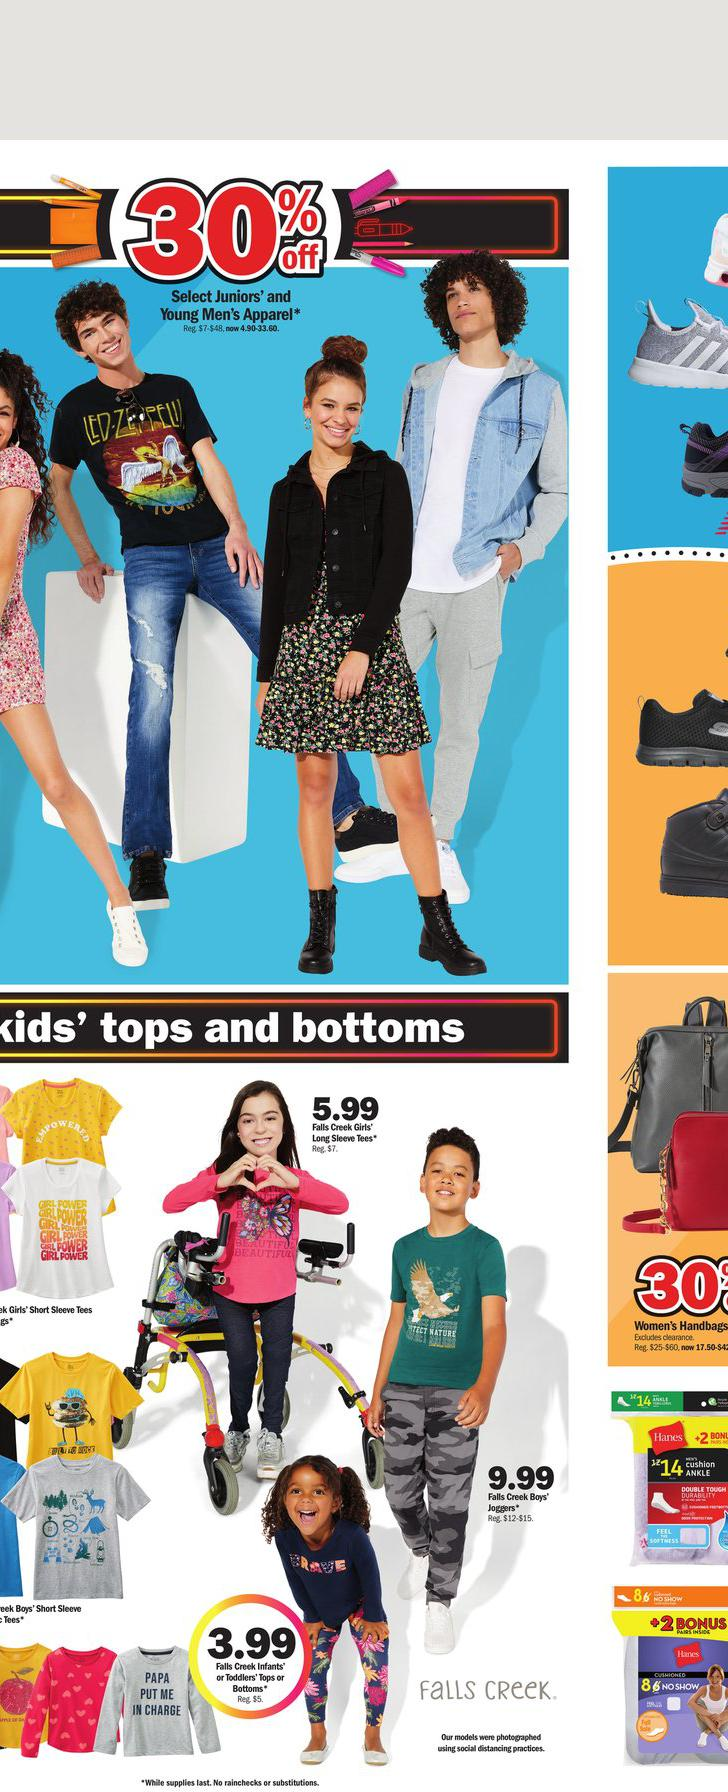 01.08.2021 Meijer ad 27. page